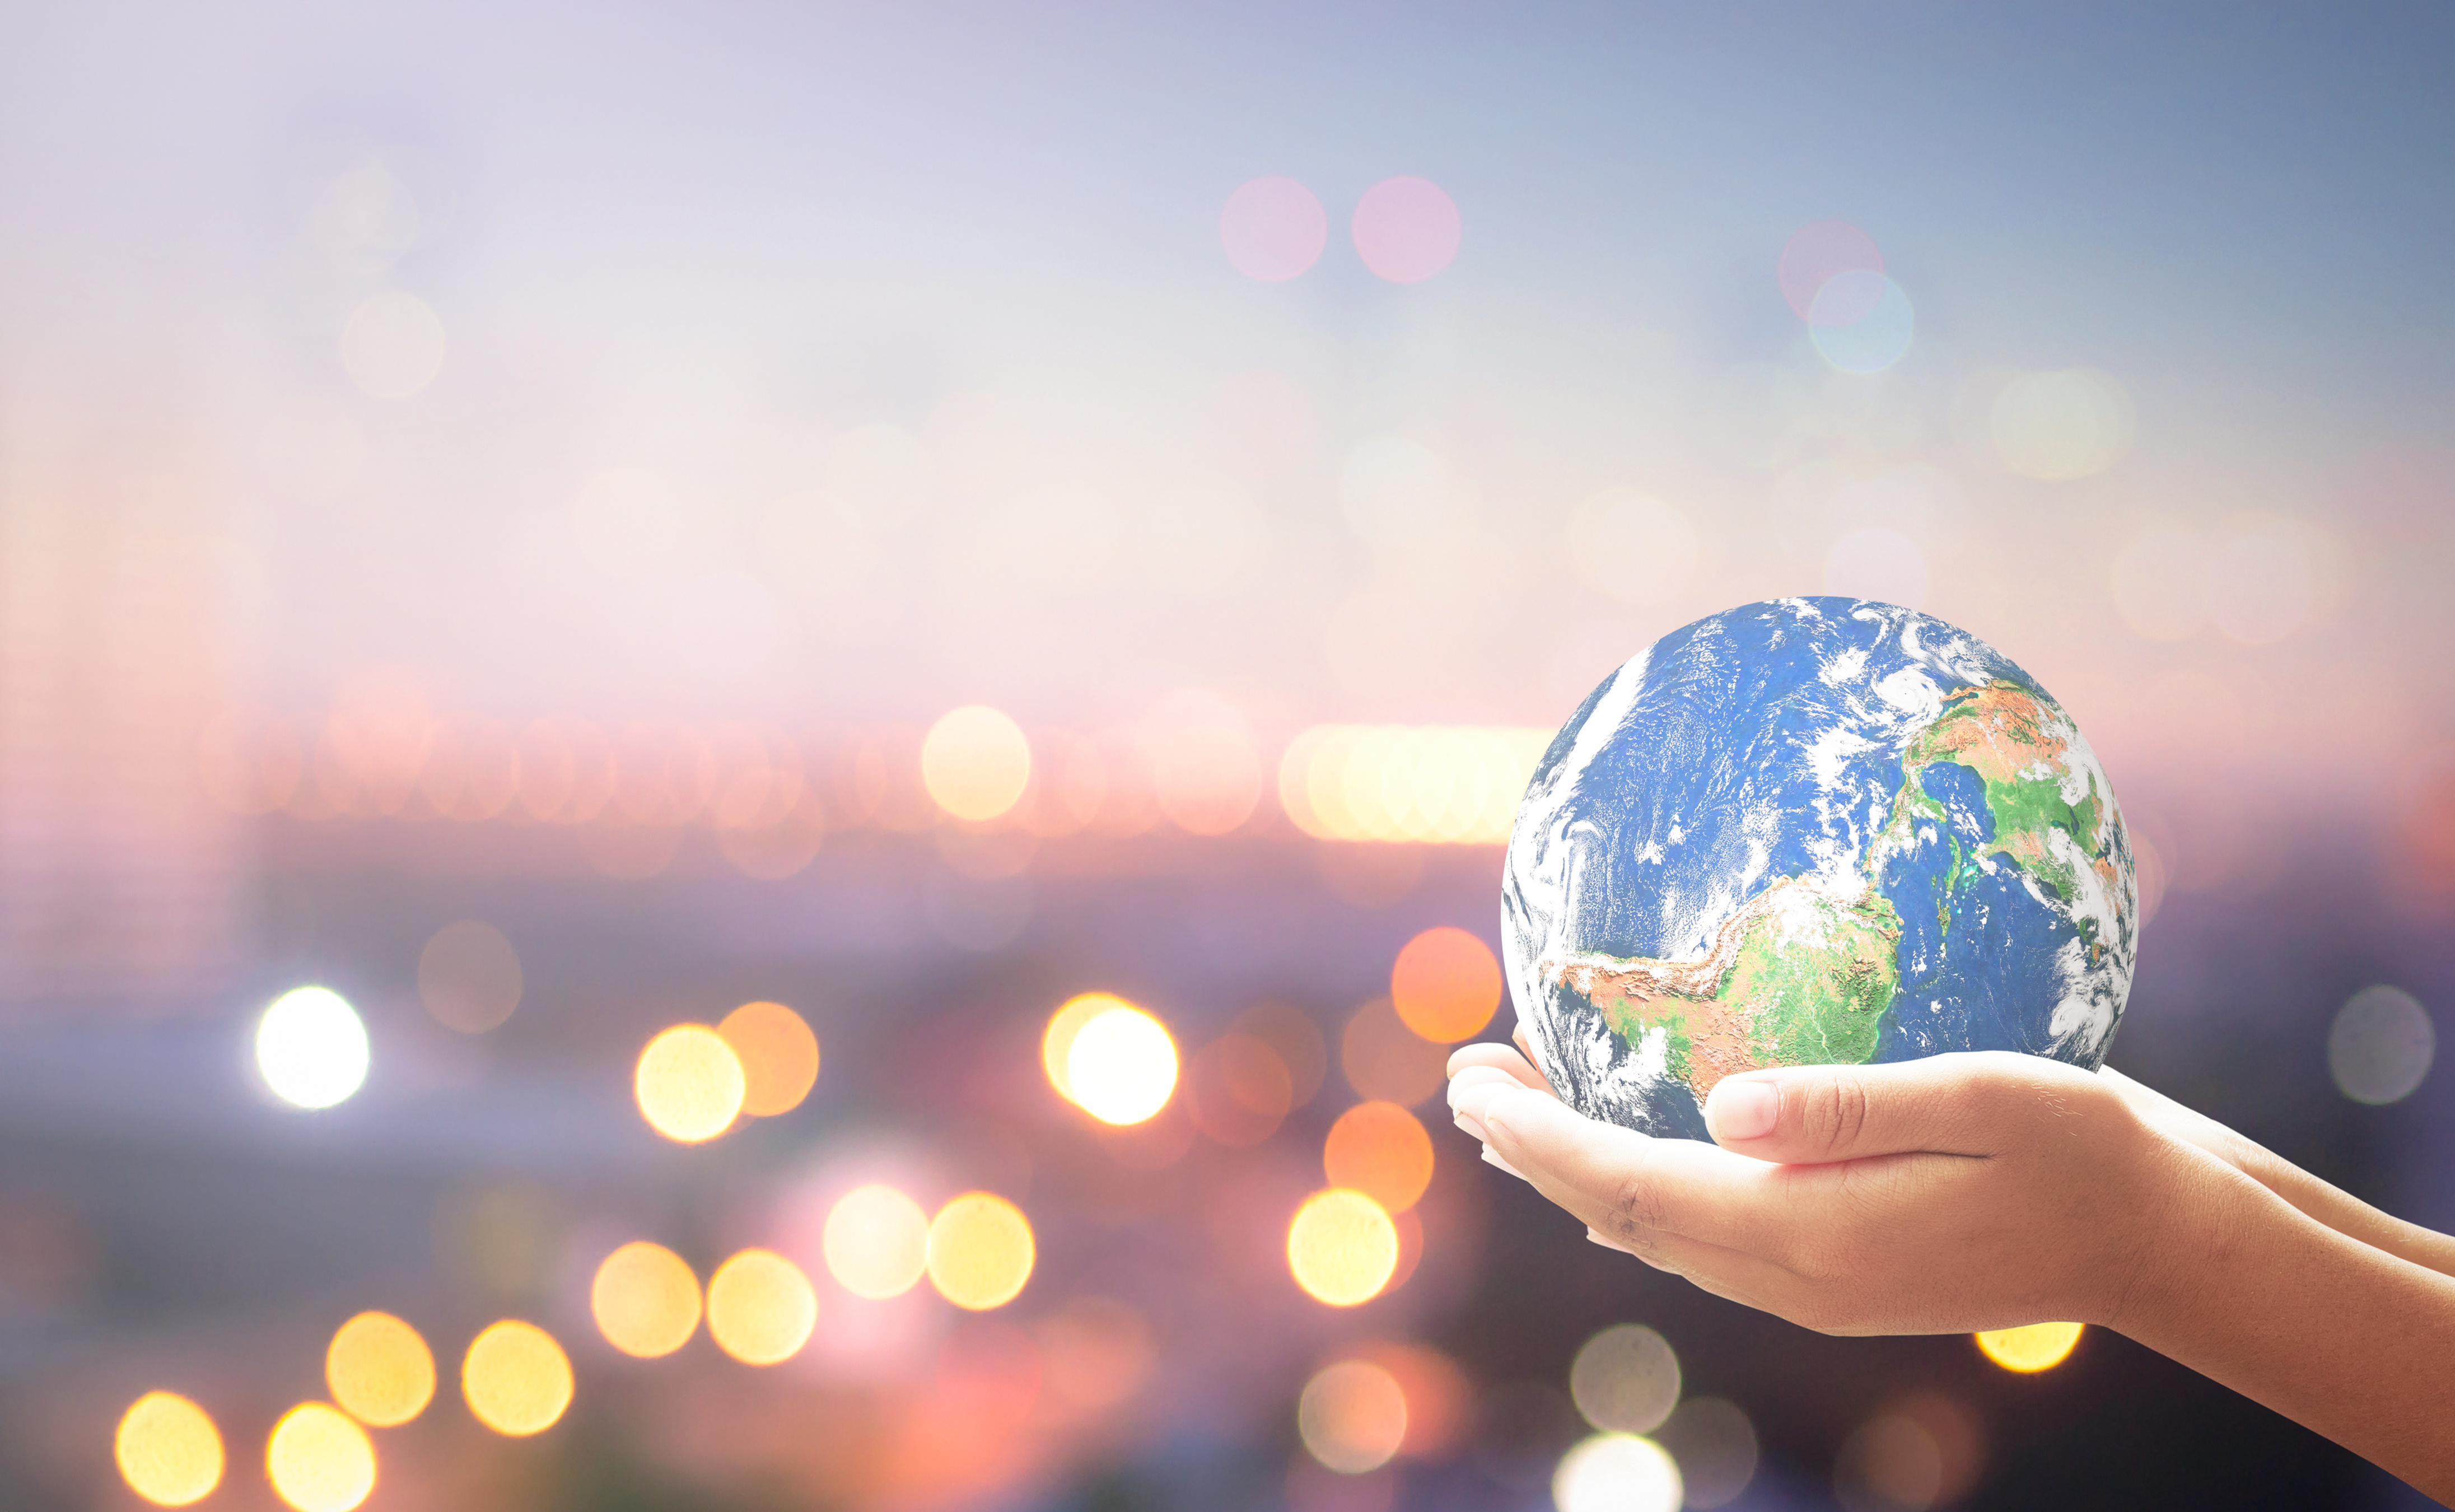 World environment day concept: Human hands holding earth globe over blurred city background. Elements of this image furnished by NASA